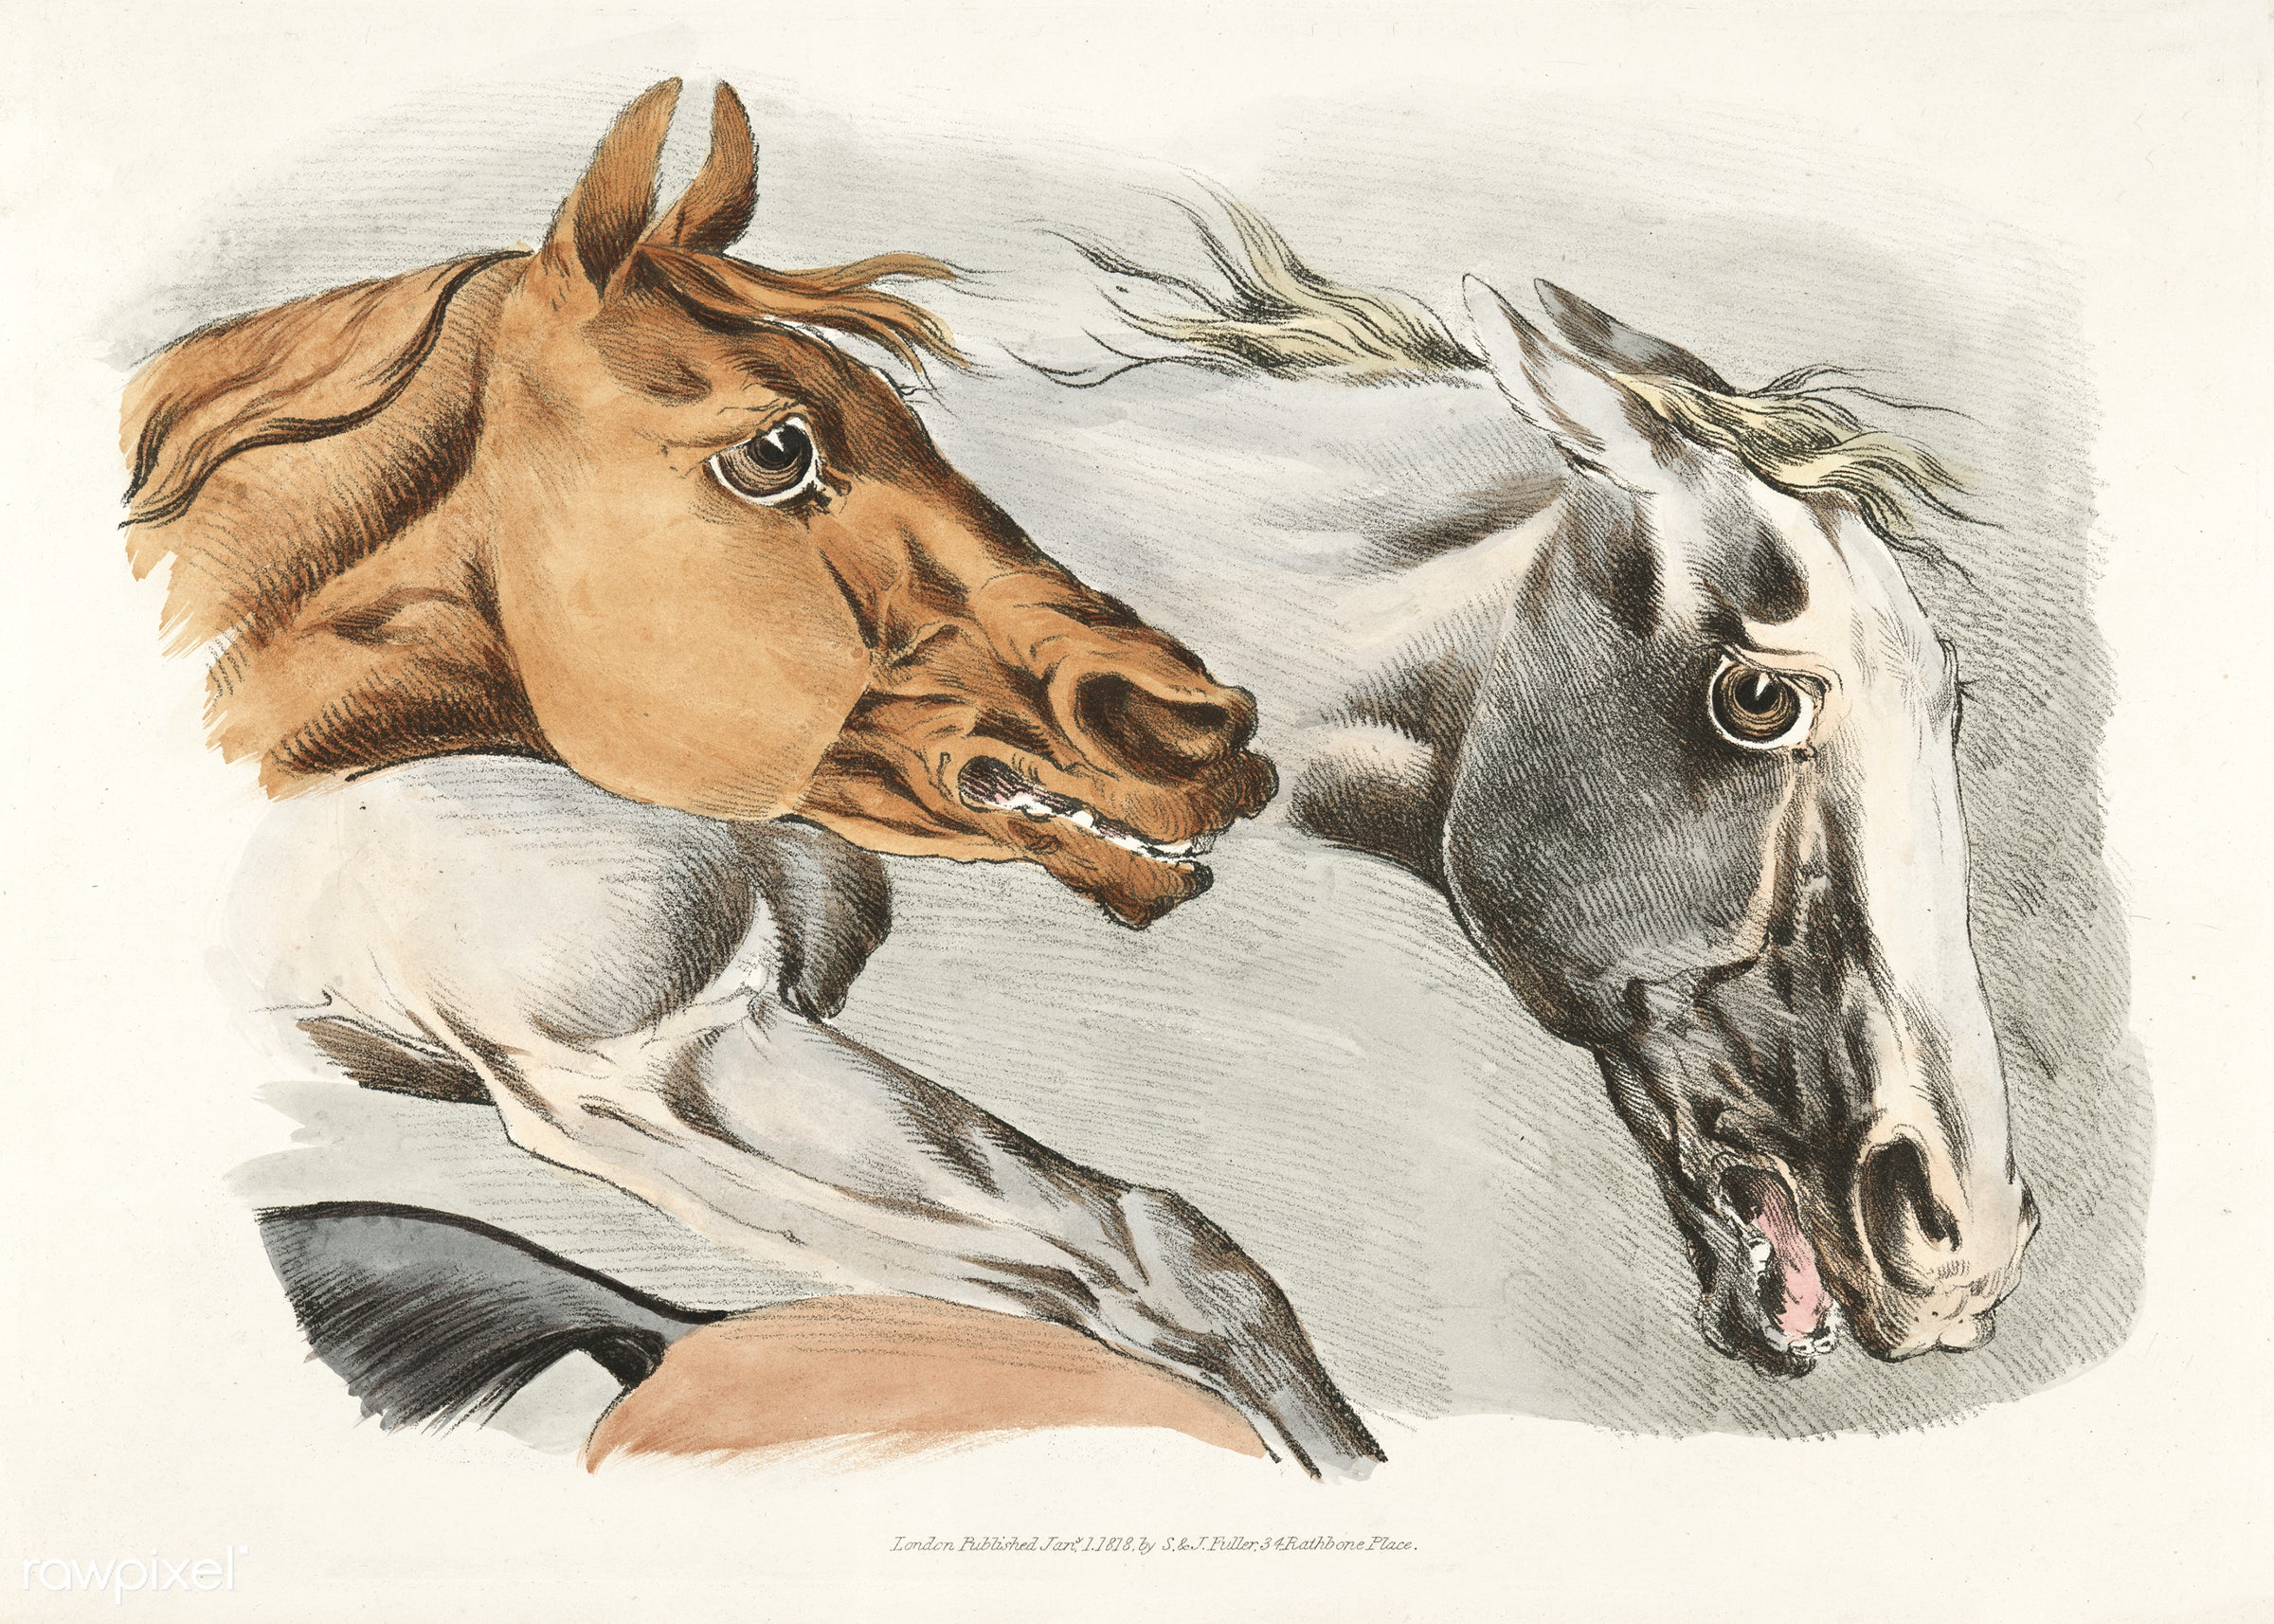 Illustration of parts of white and brown horses from Sporting Sketches (1817-1818) by Henry Alken (1784-1851). - animal,...